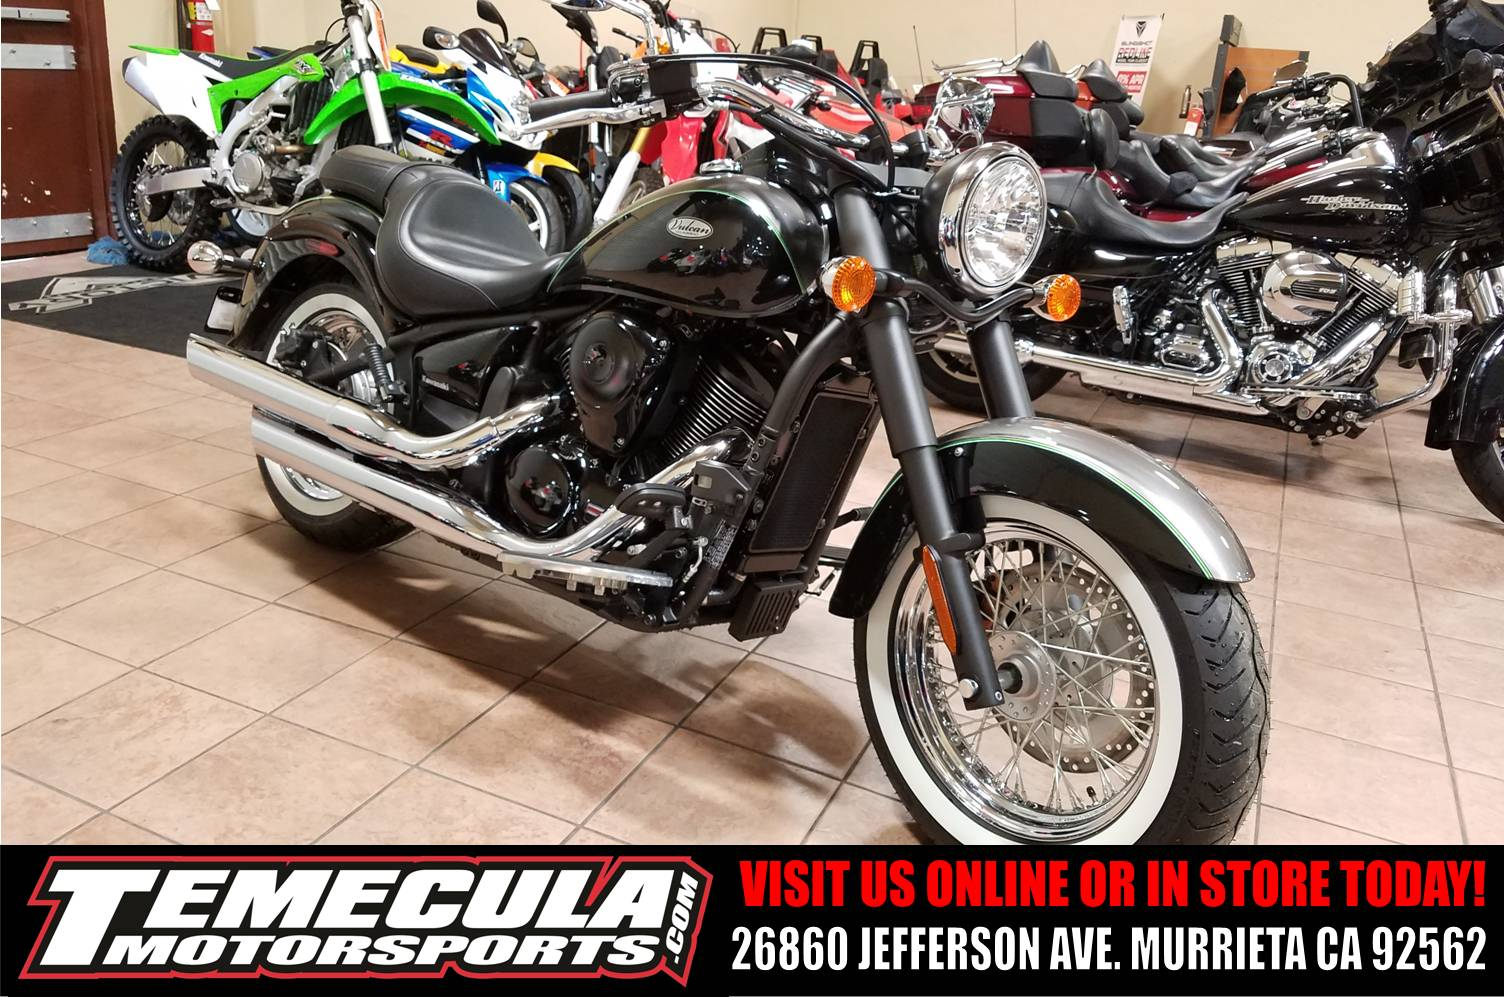 2017 Kawasaki Vulcan 900 Classic in Murrieta, California